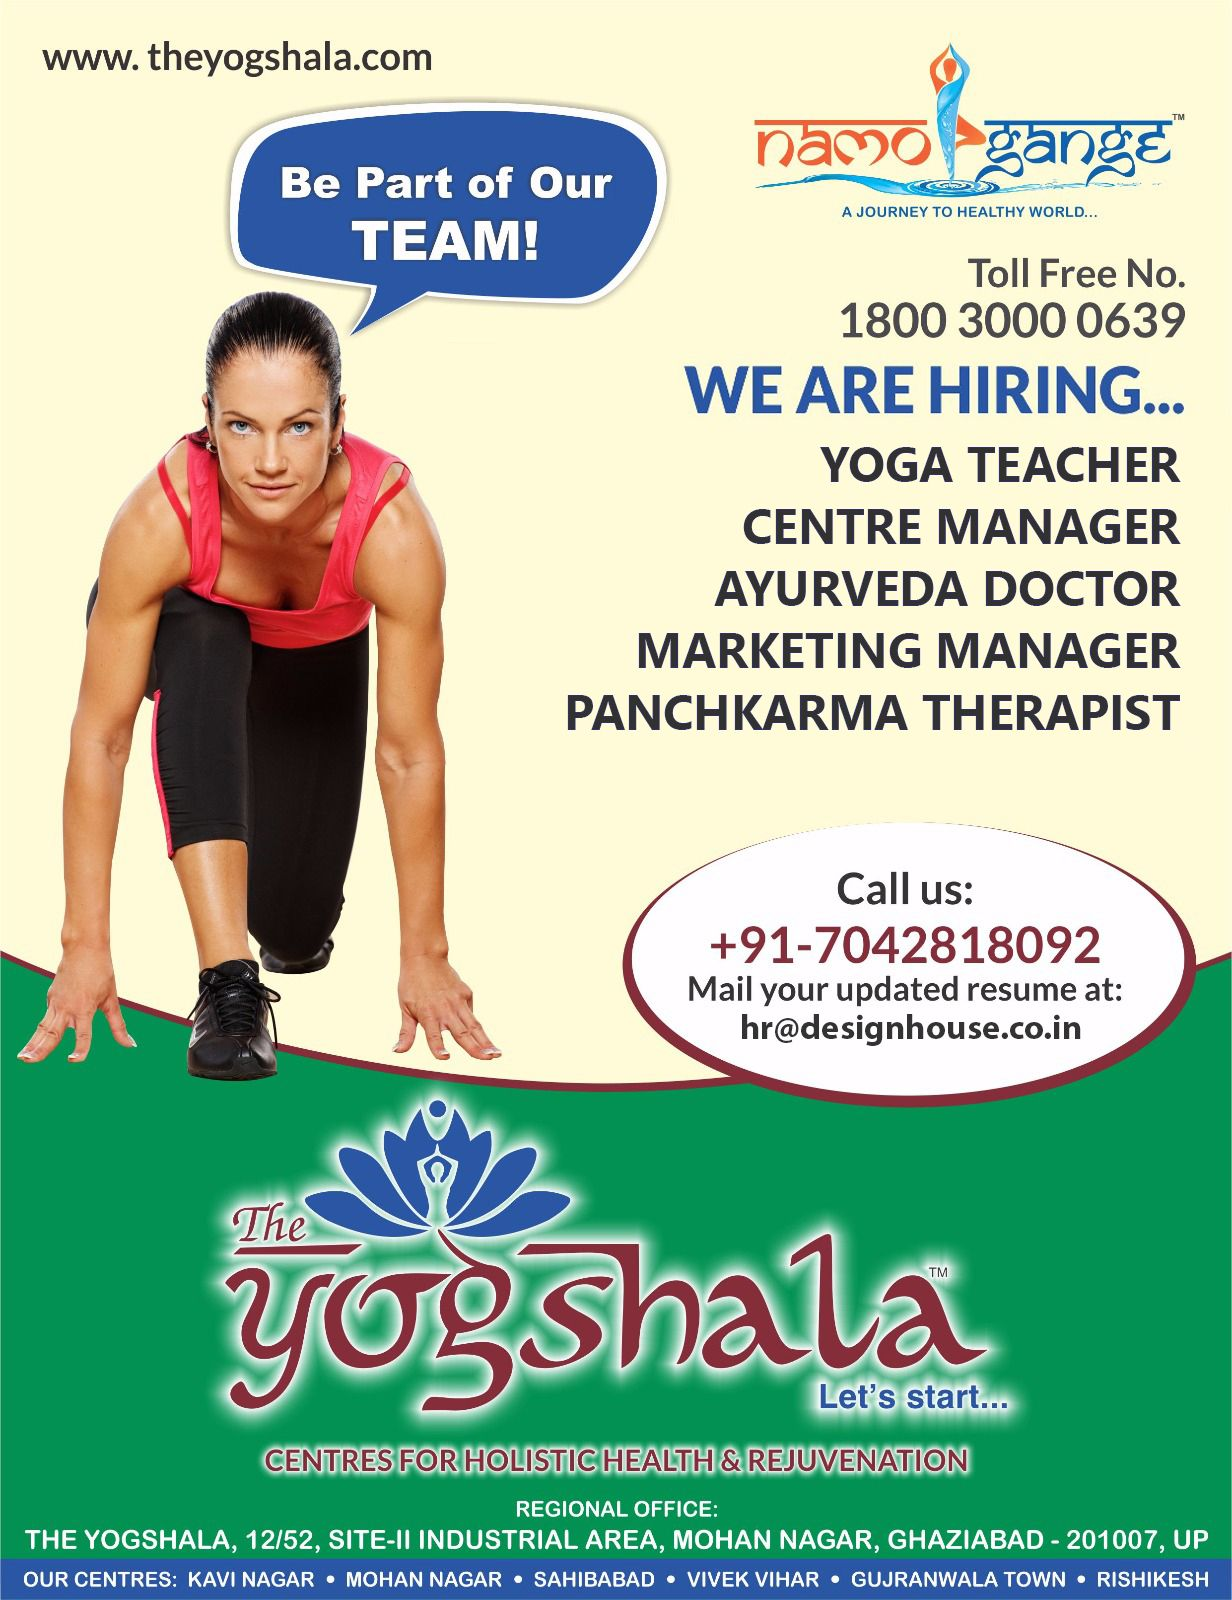 Pin on yoga therapy